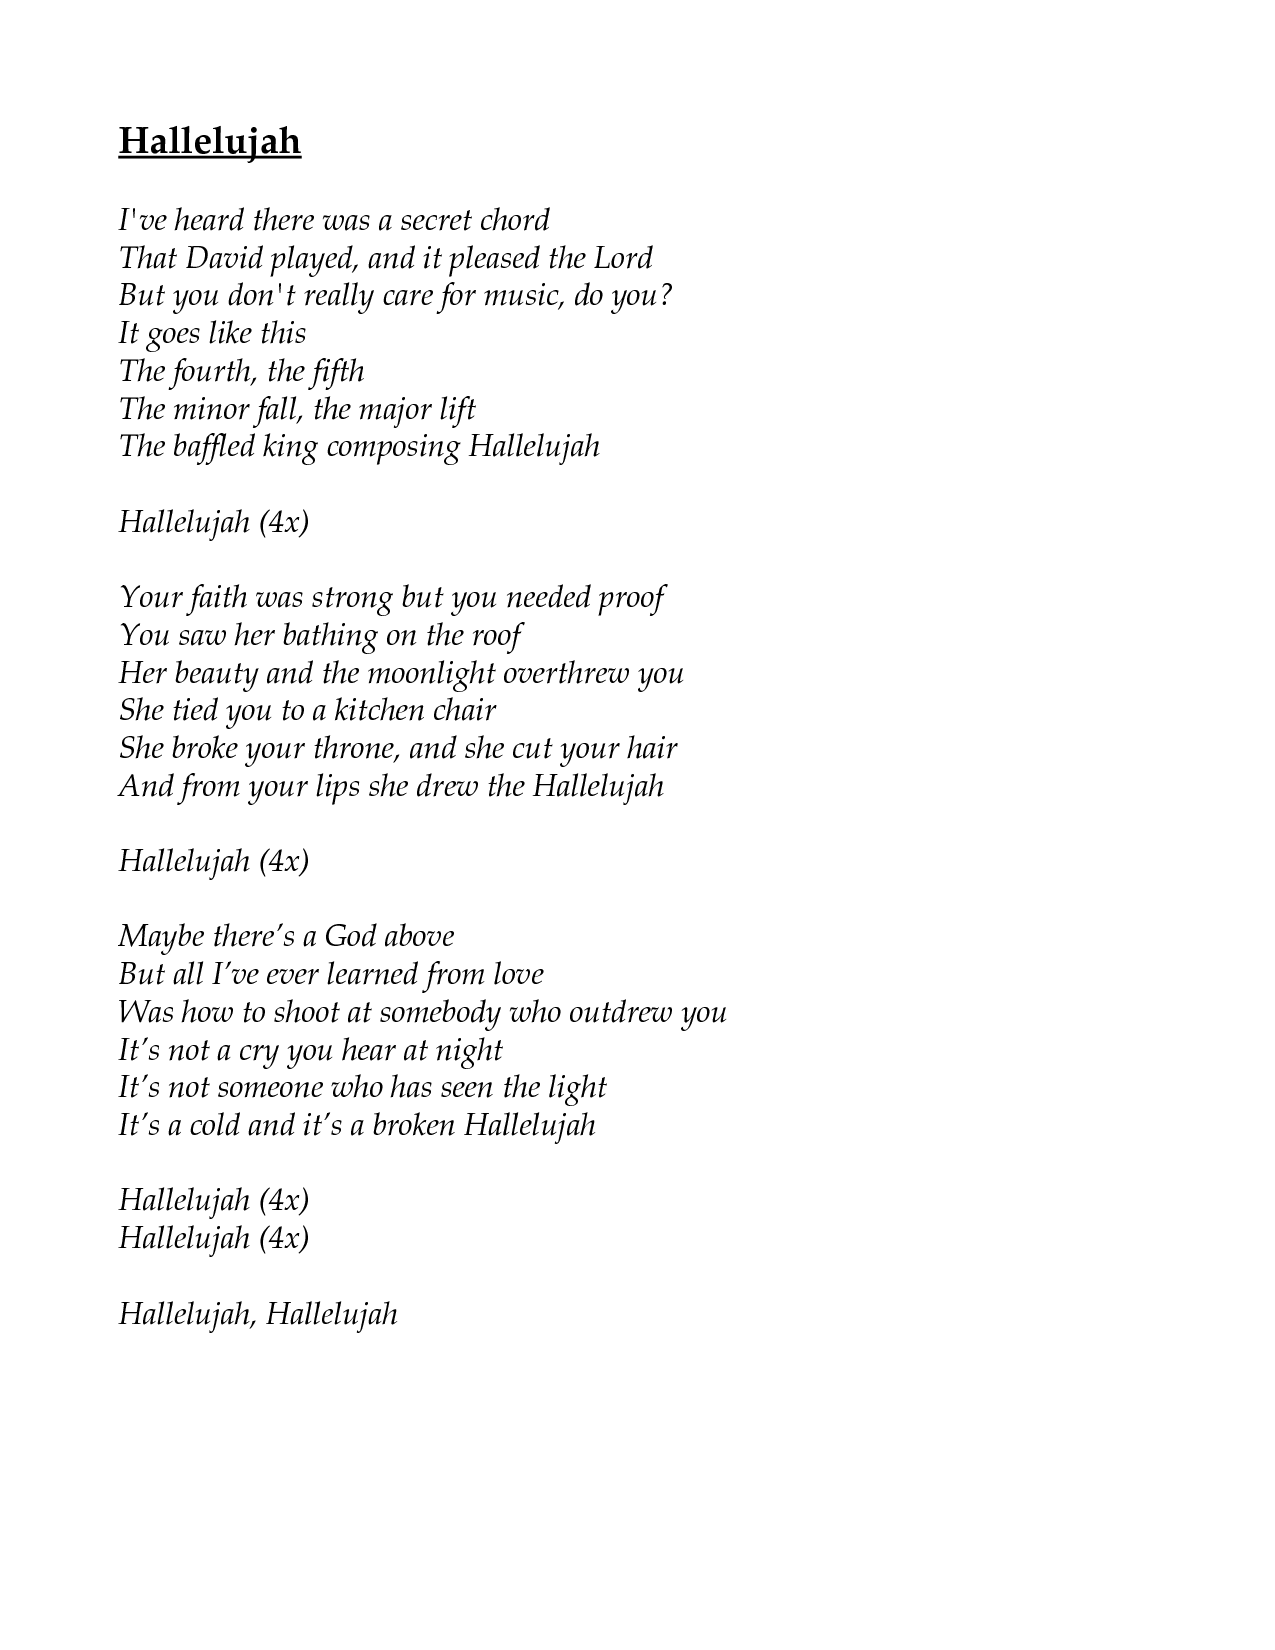 Hallelujah - notes and lyrics for vocal